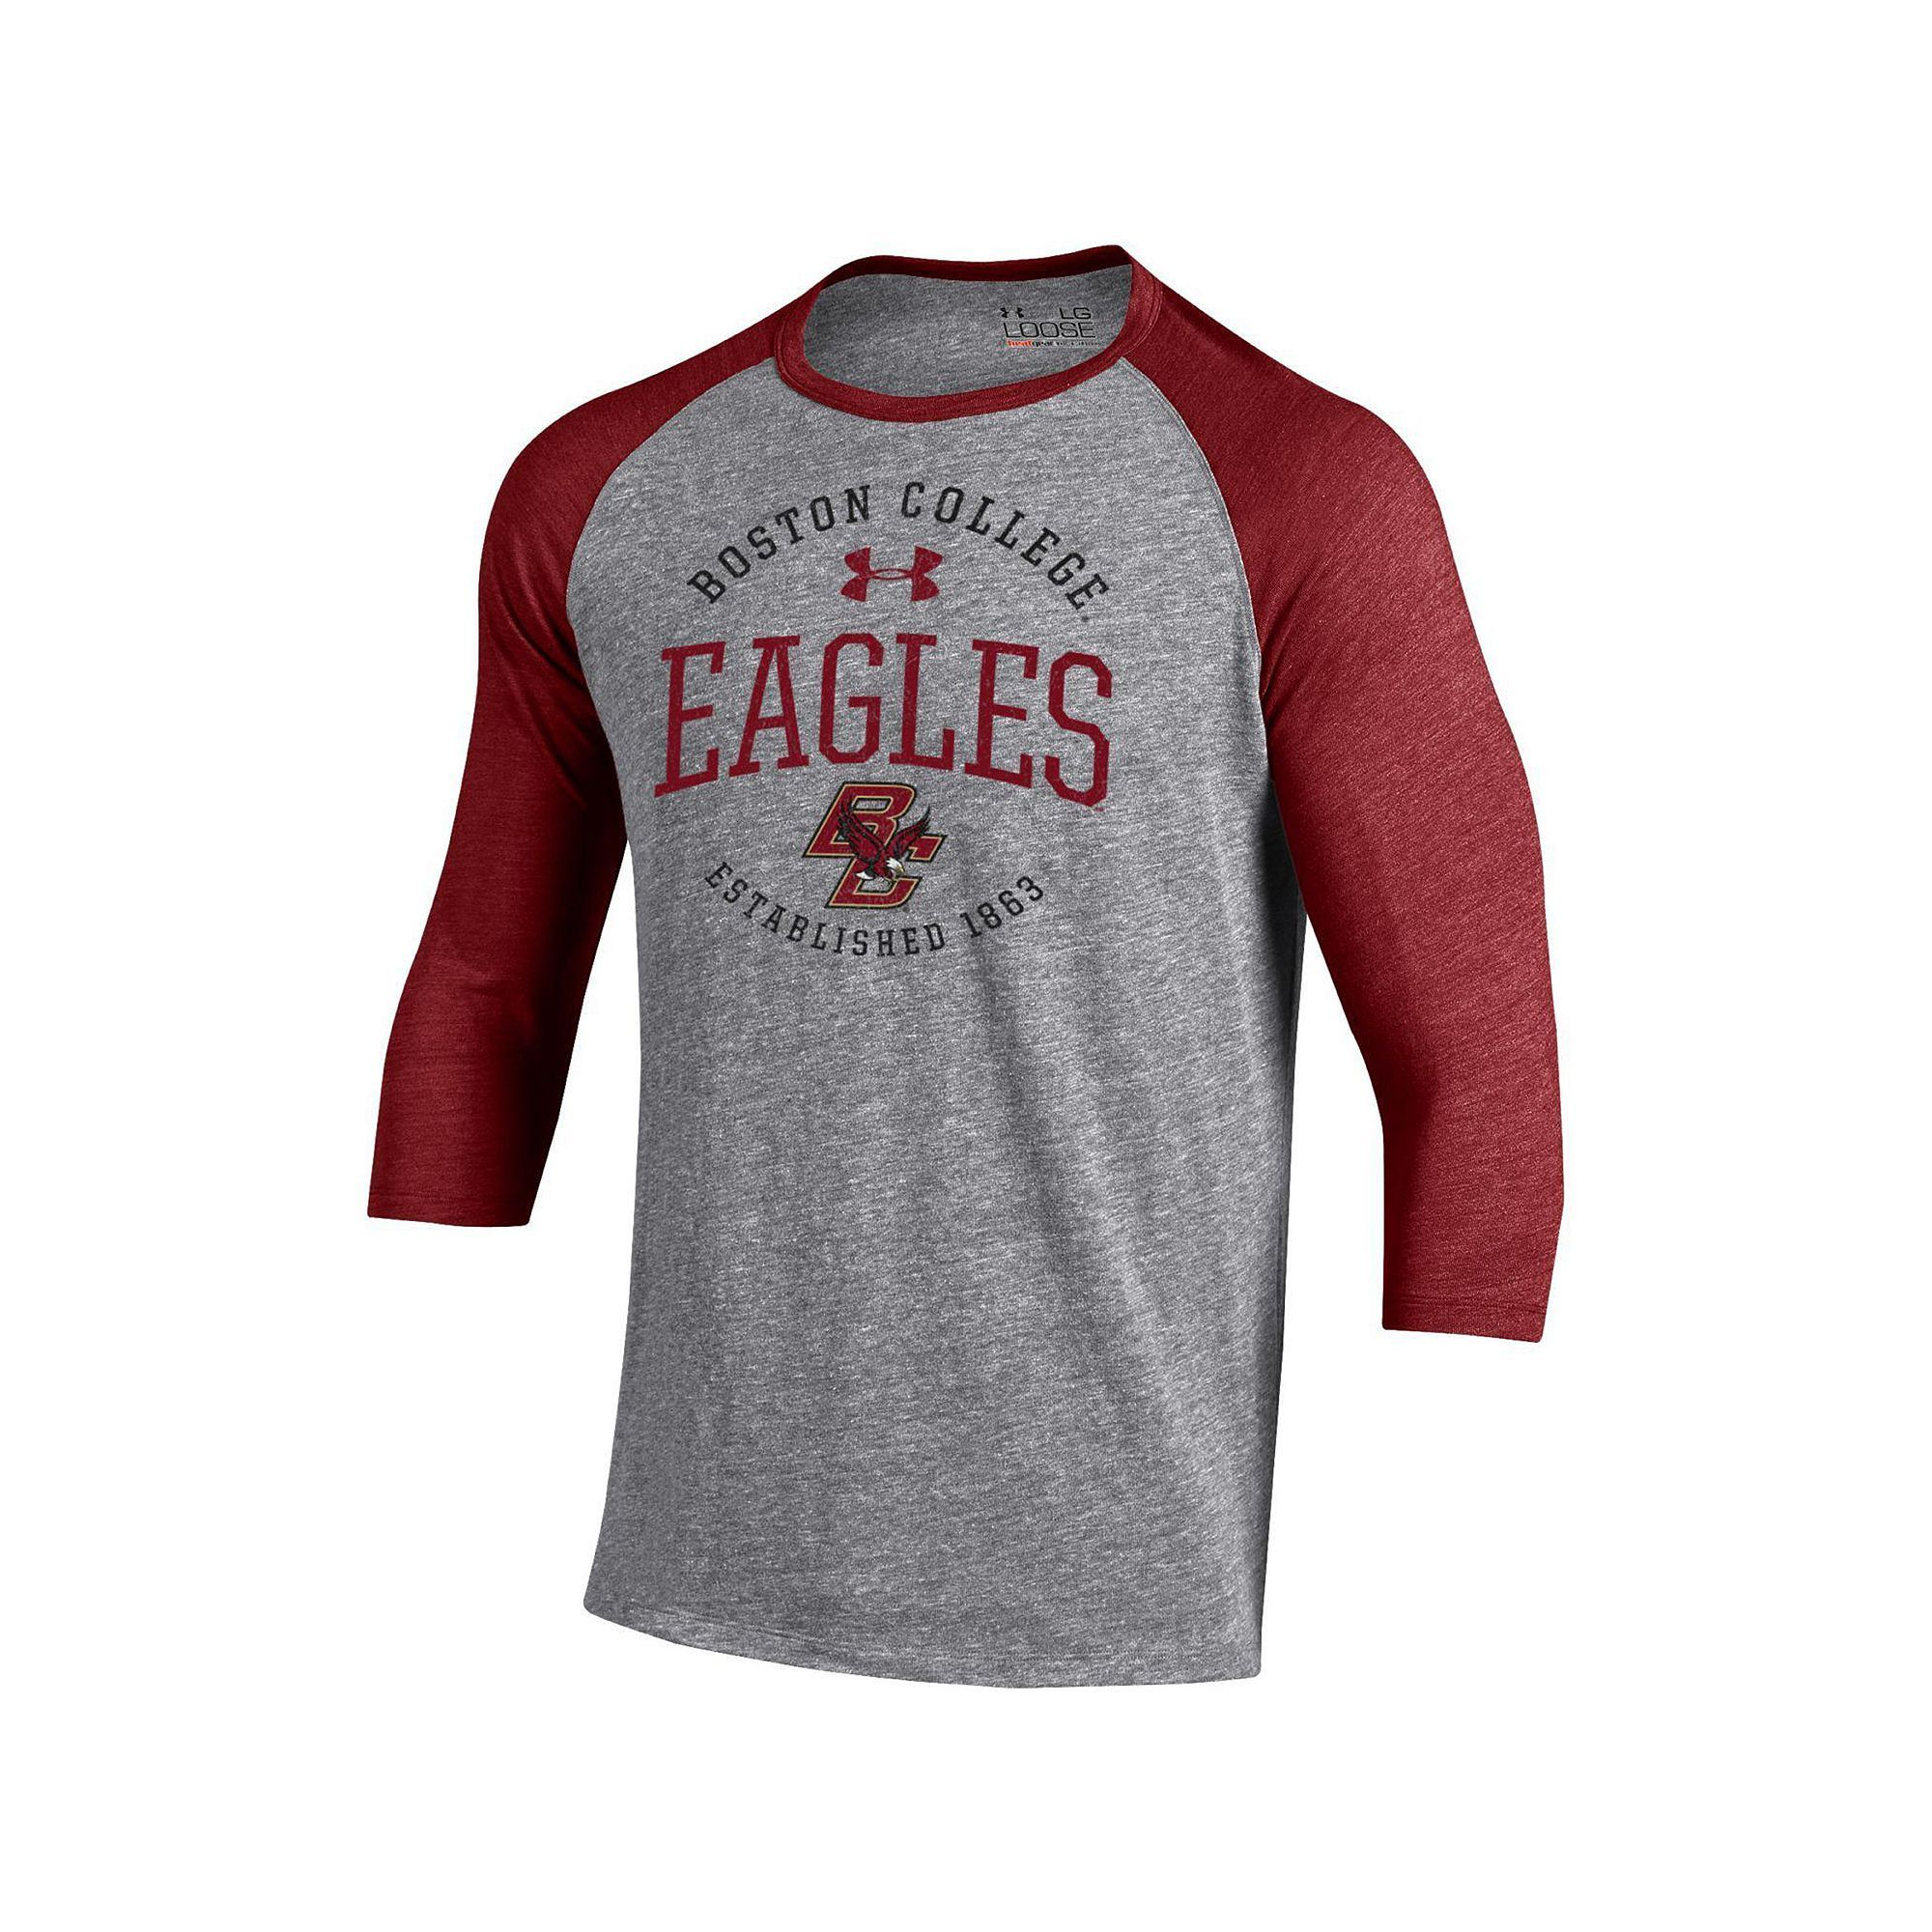 Men's Under Armour Boston College Eagles Triblend Baseball Tee